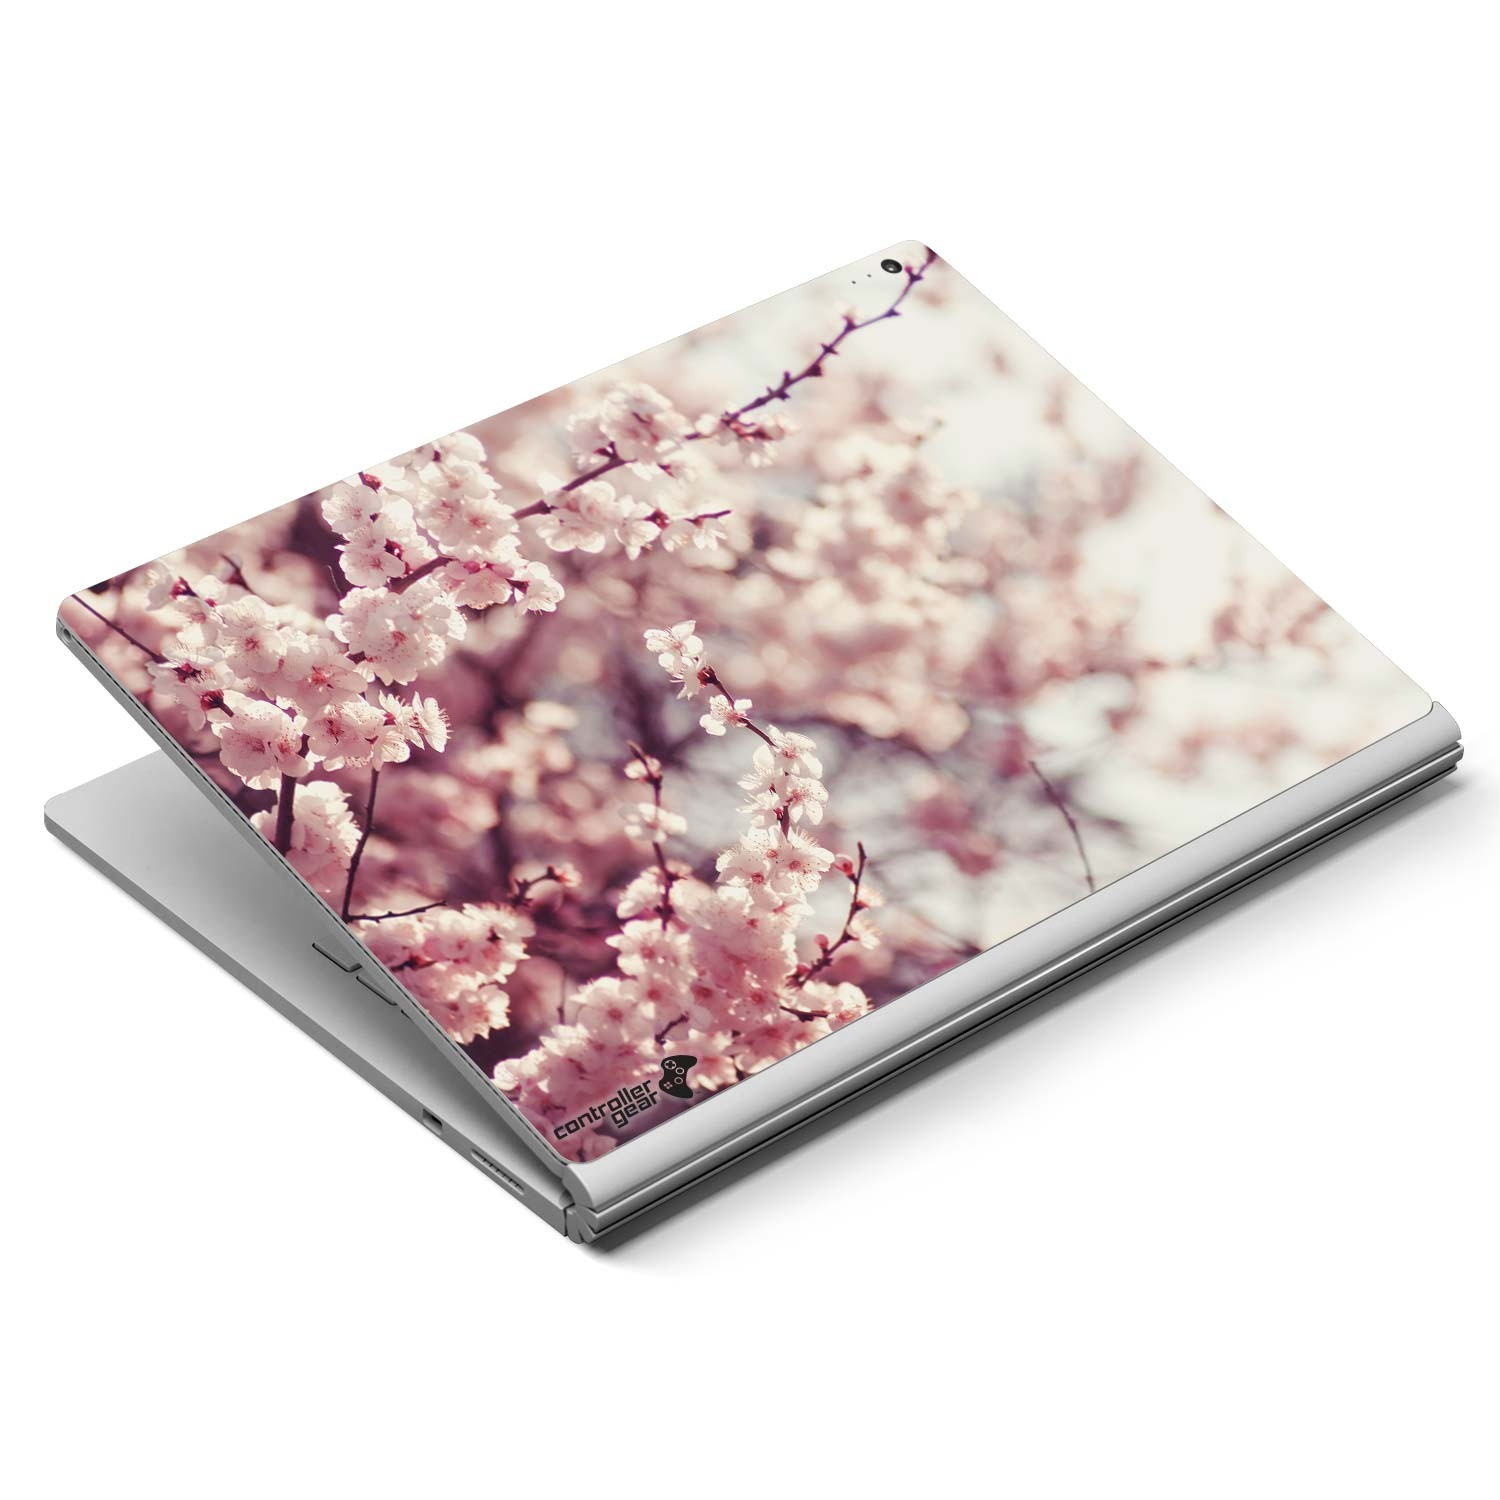 Controller Gear Surface Book Skin - Cherry Blossom. Officially Licensed by Microsoft